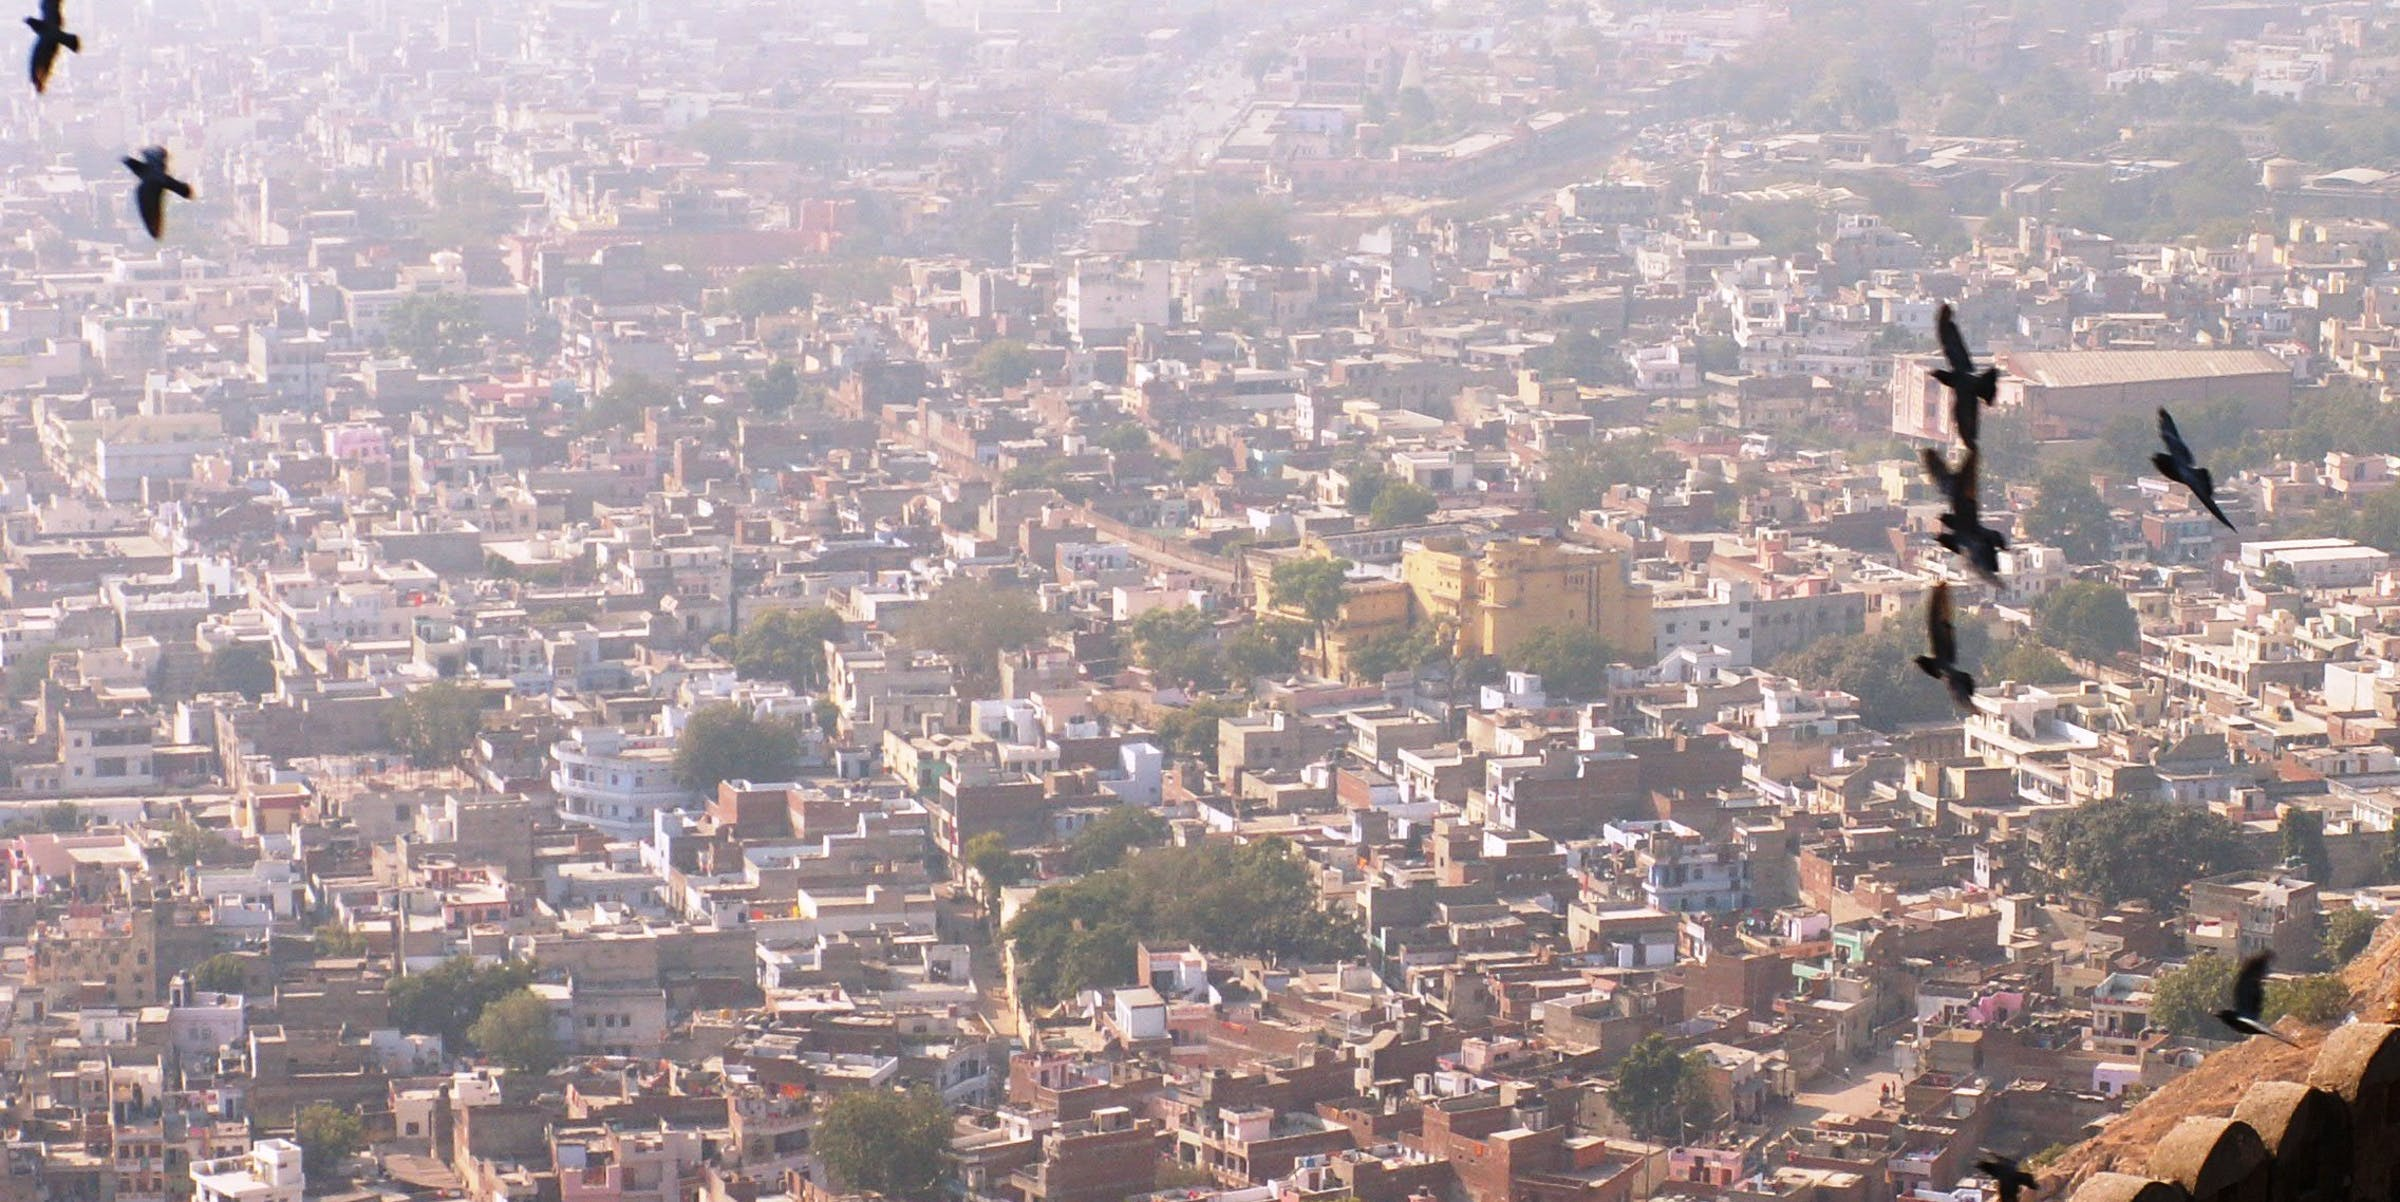 Flying over Jaipur